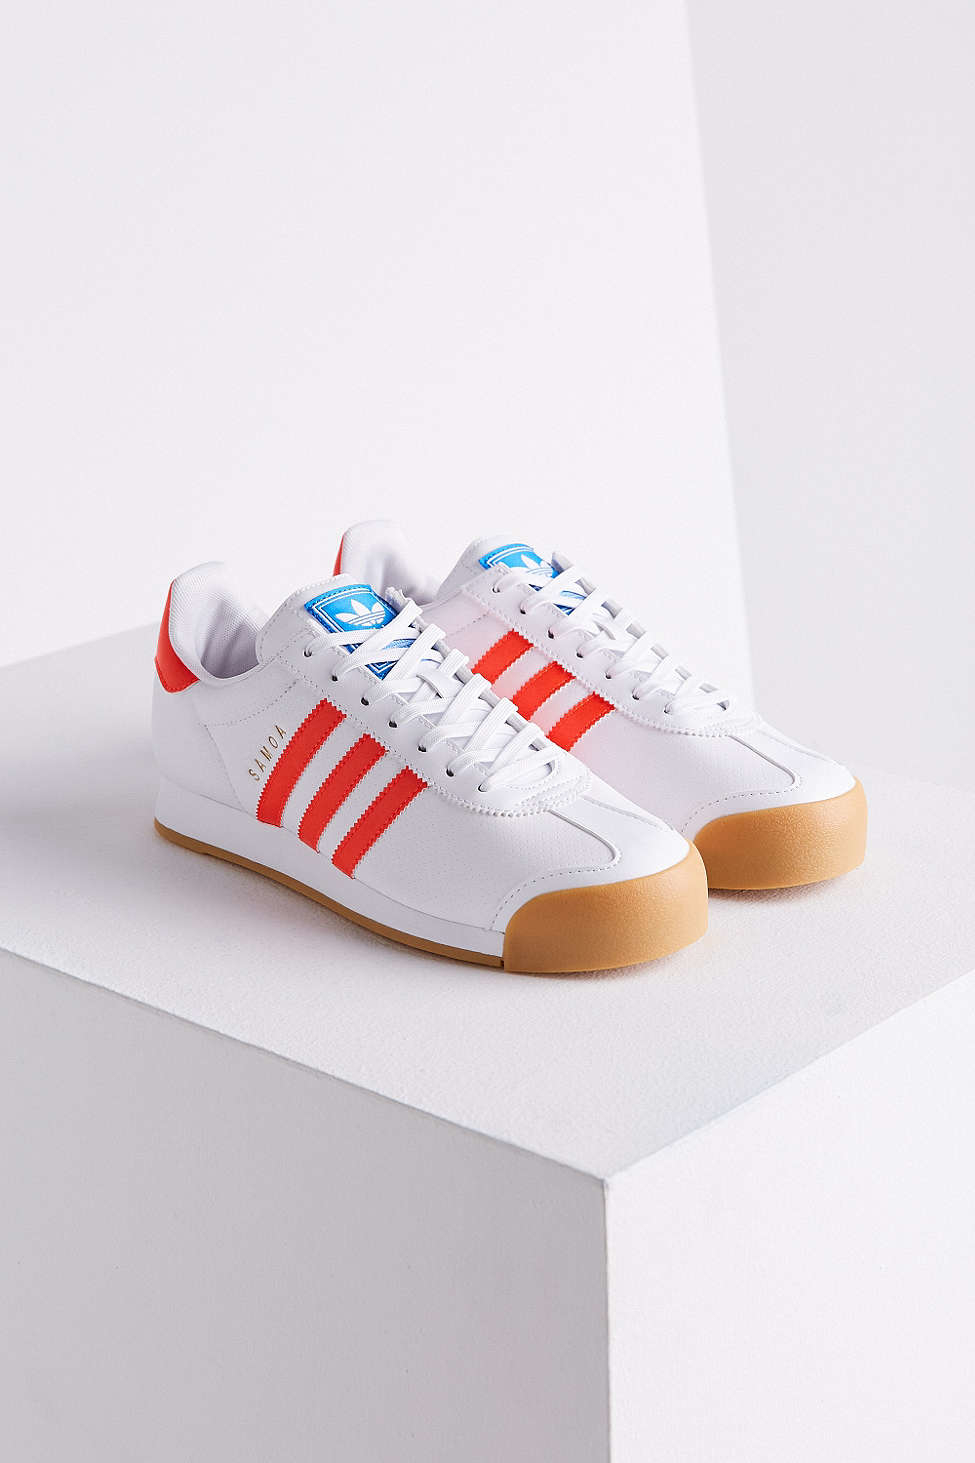 huge selection of 4e3d0 1caa2 ... promo code for lyst adidas originals samoa perforated gum sole sneaker  in white 3e320 fa93c